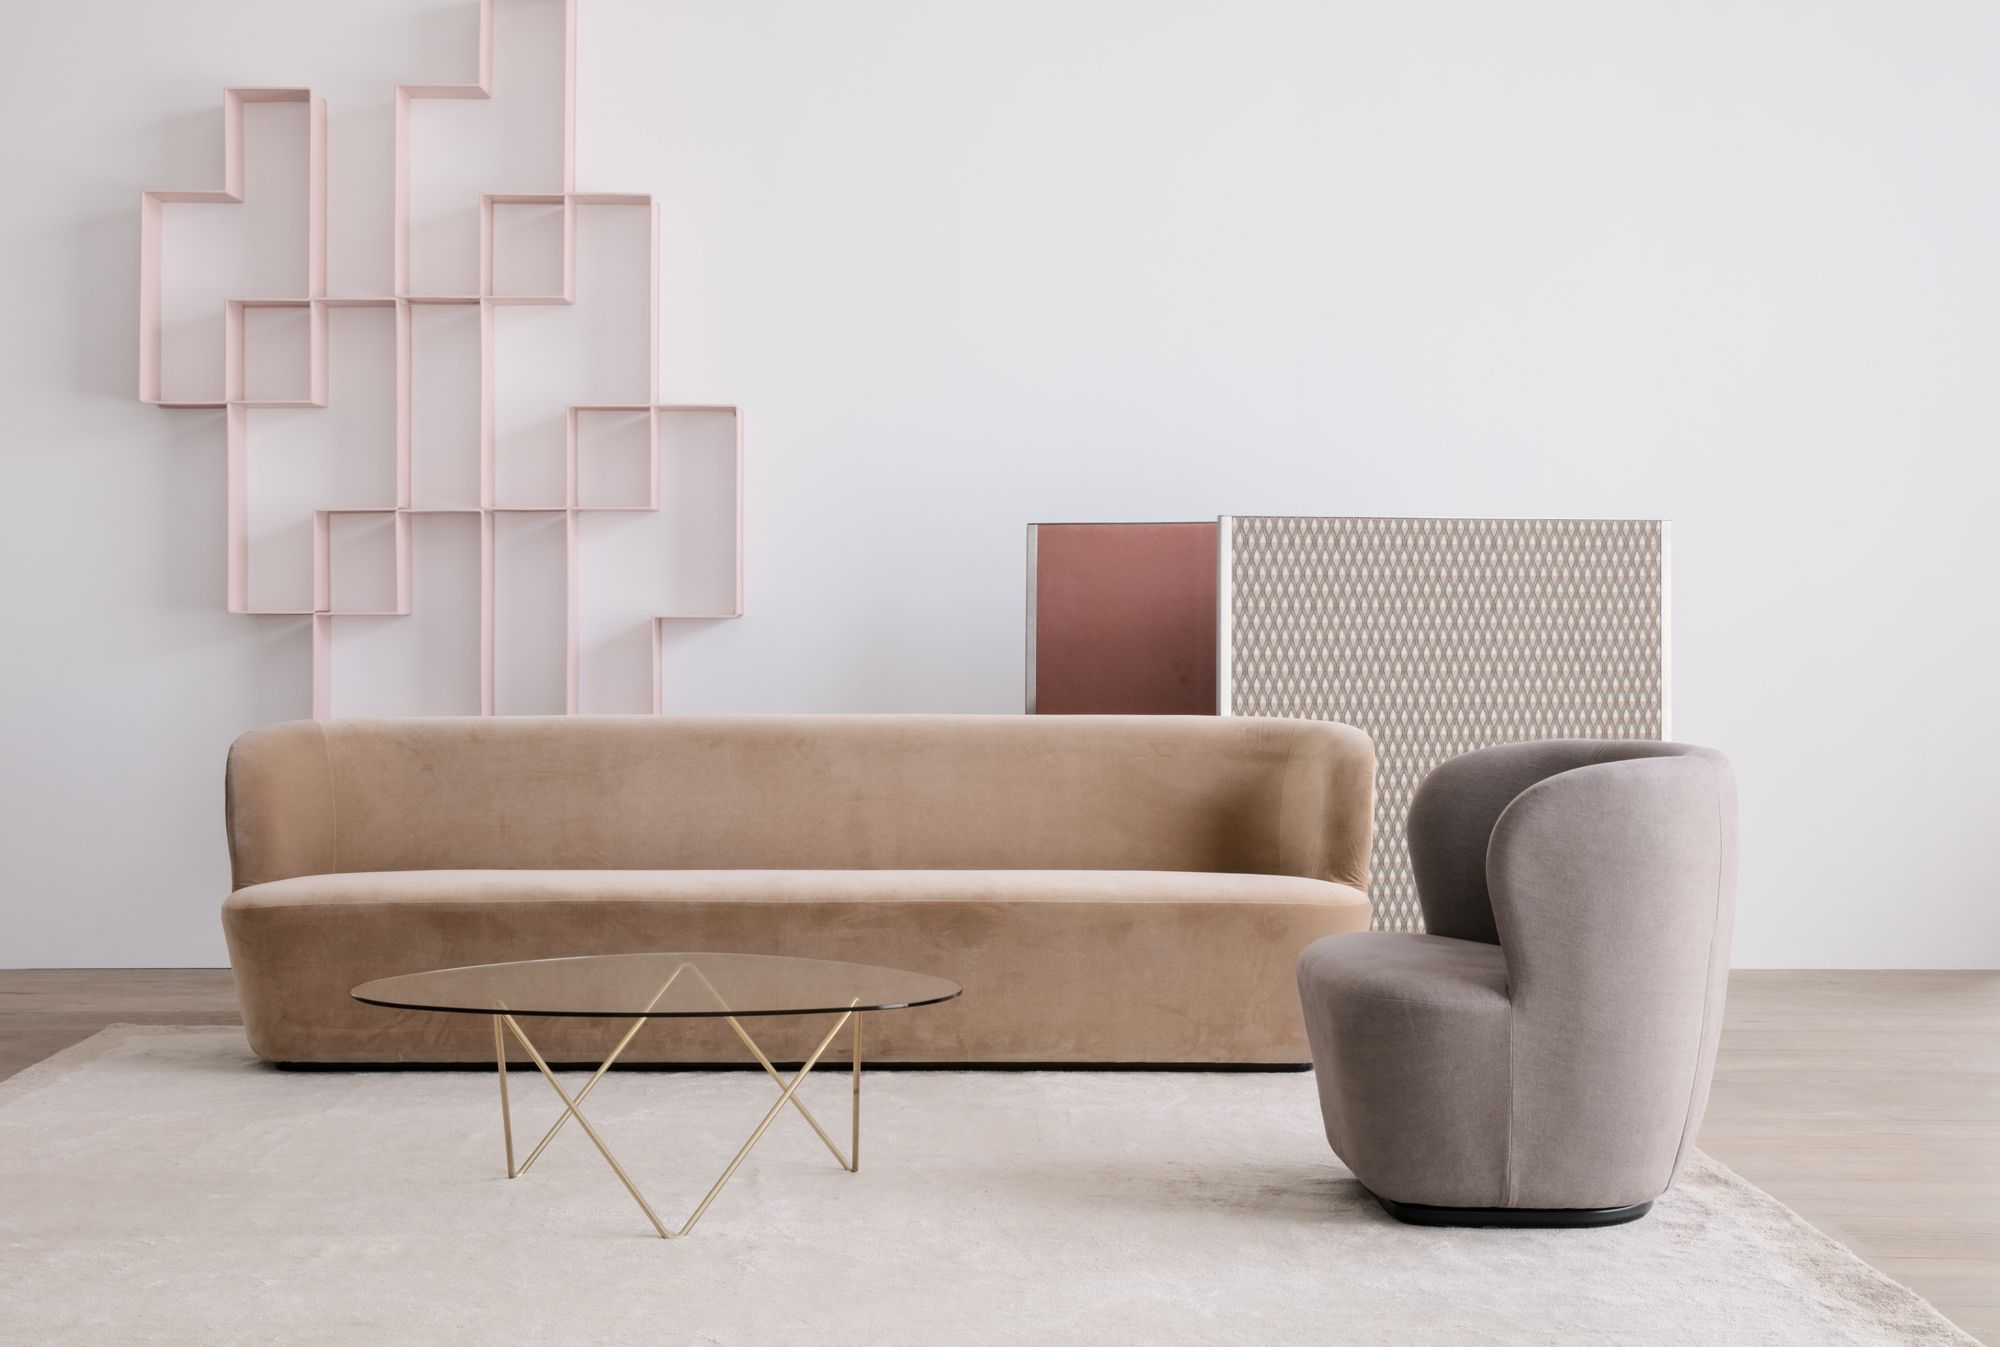 GUBI Stay Sofa and Lounge Chair Pedrera Coffee Table Dedal